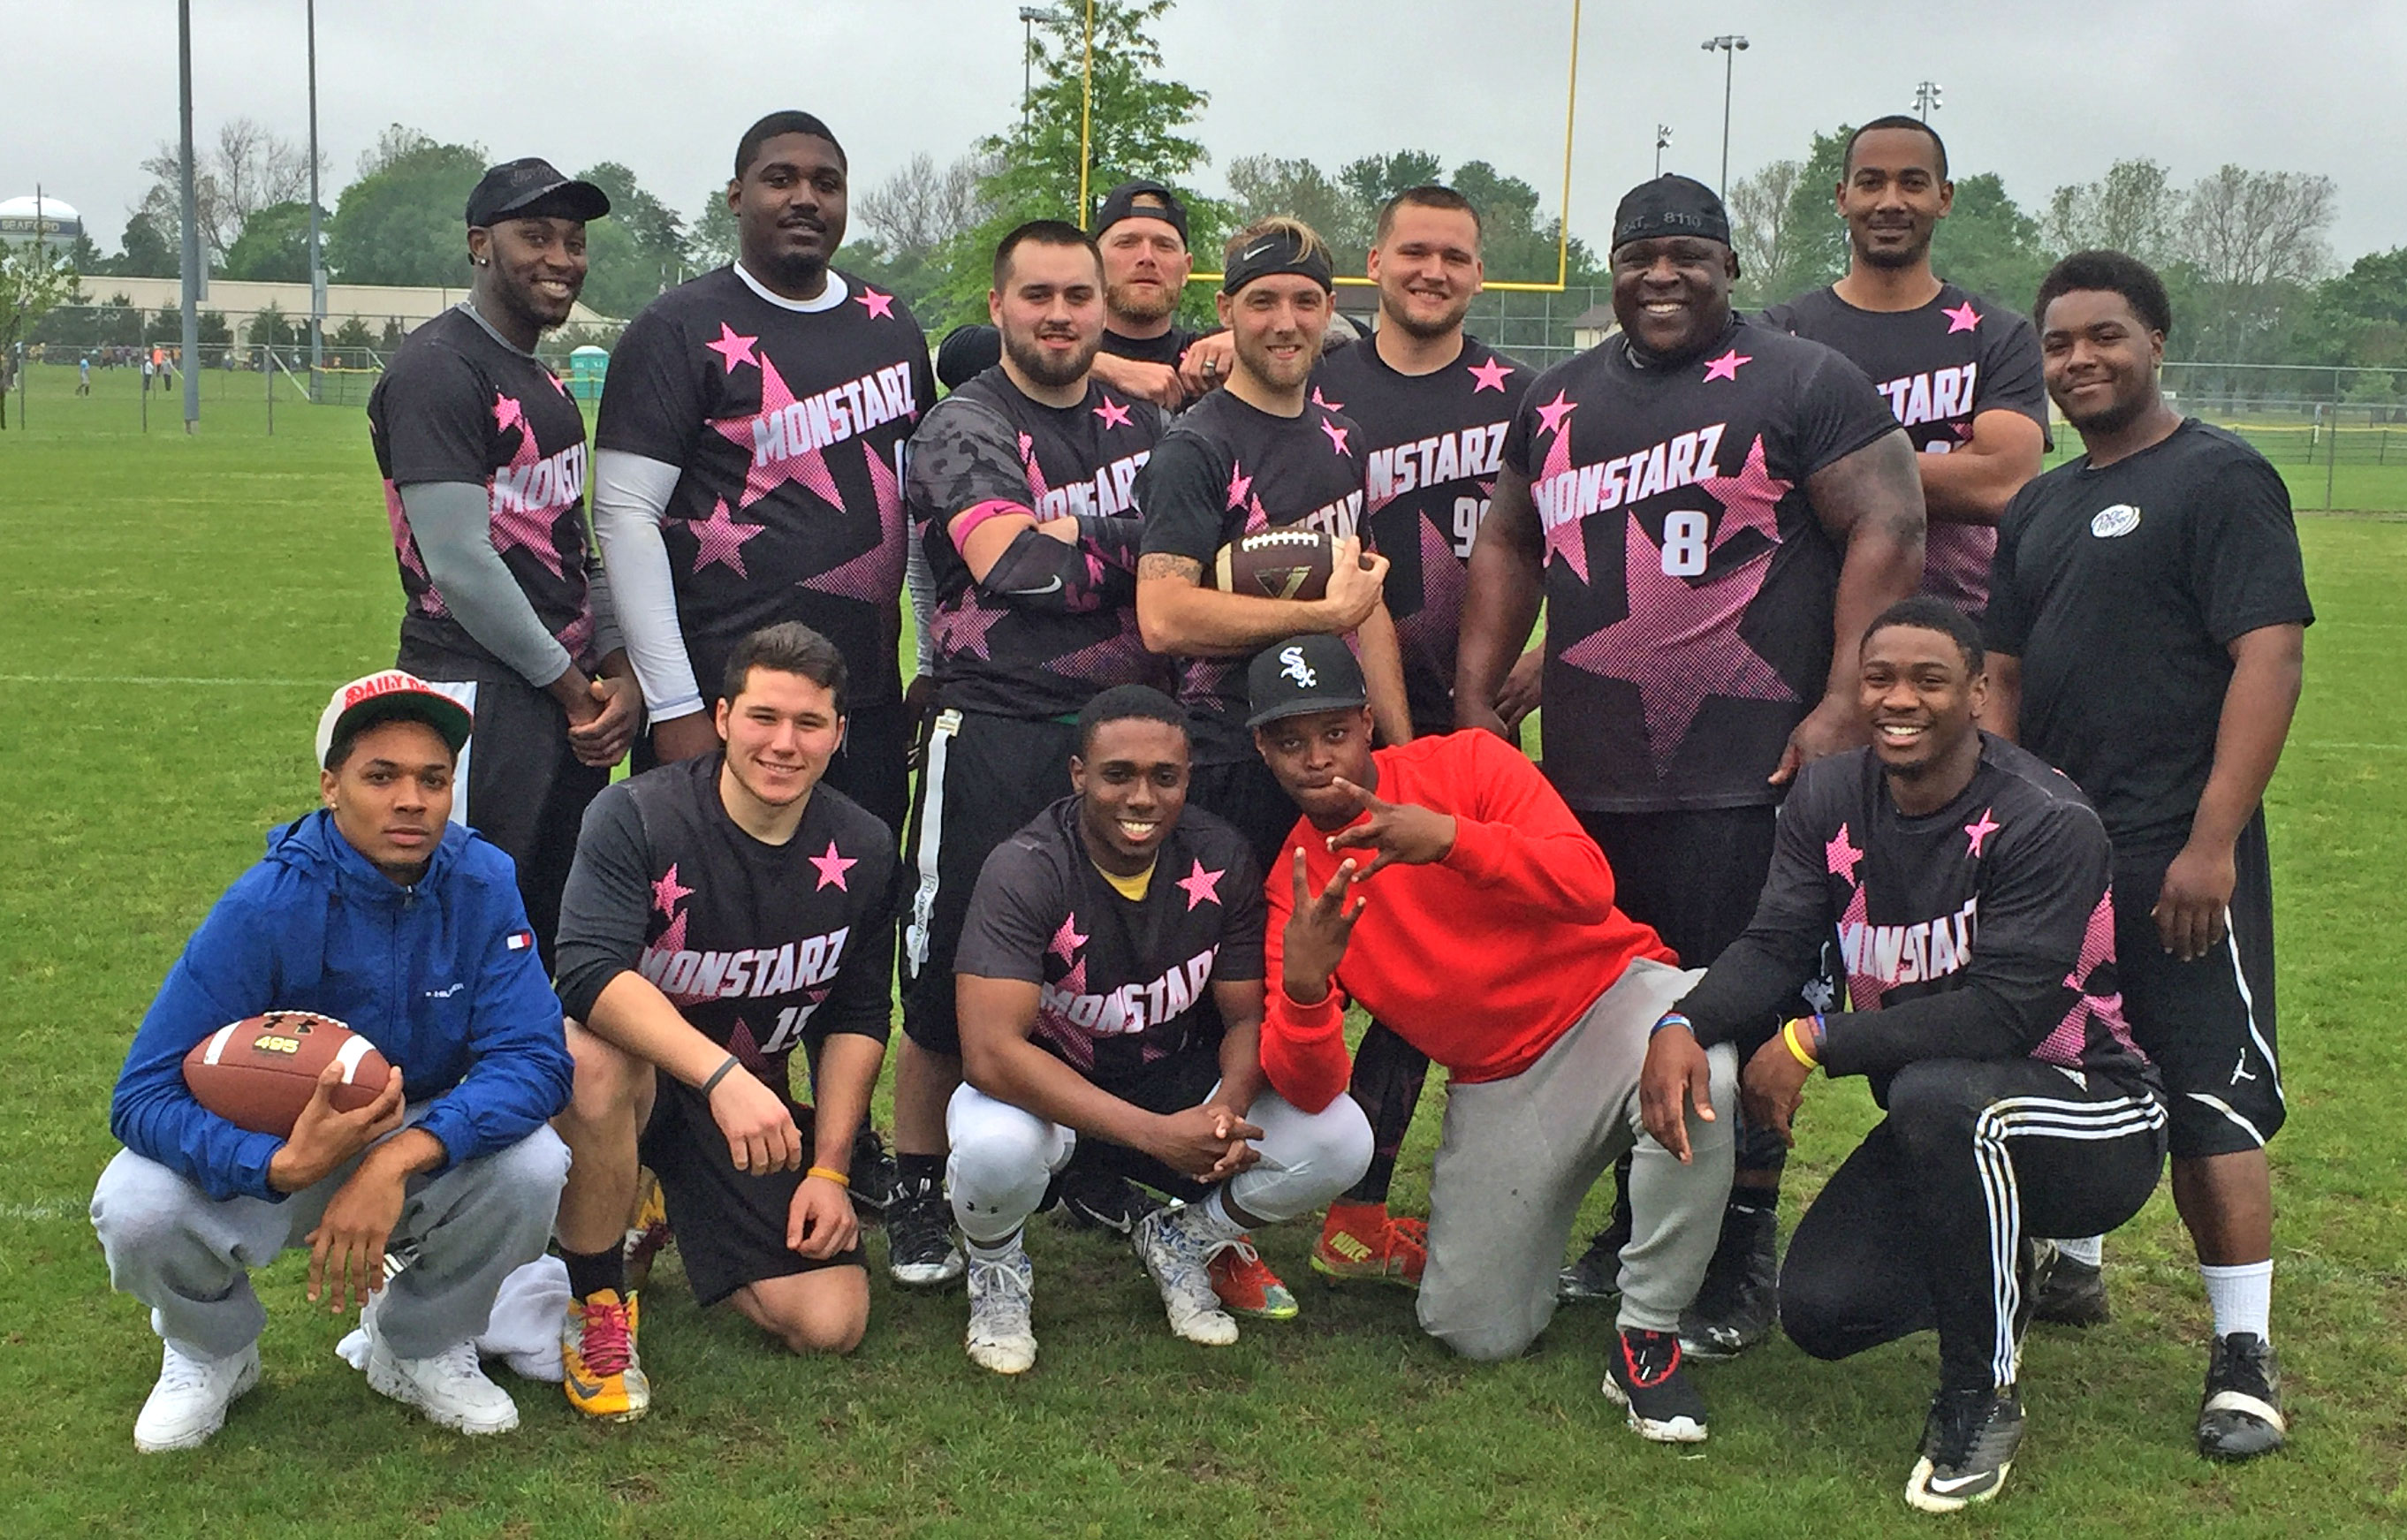 Monstarz Flag Football donning custom sublimated jerseys